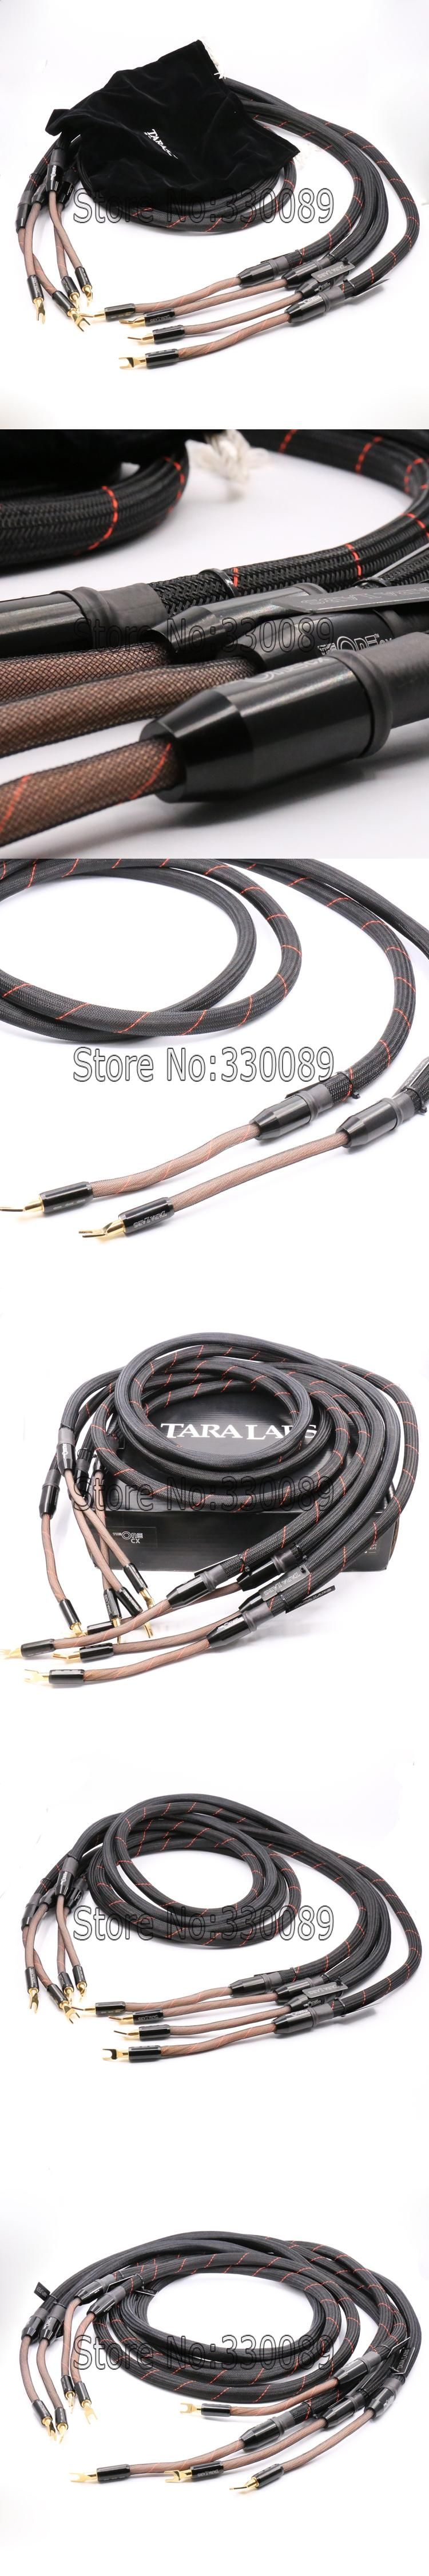 Free shipping 2.5m Tara Labs The one Speaker cable Loudspeaker Cable ...